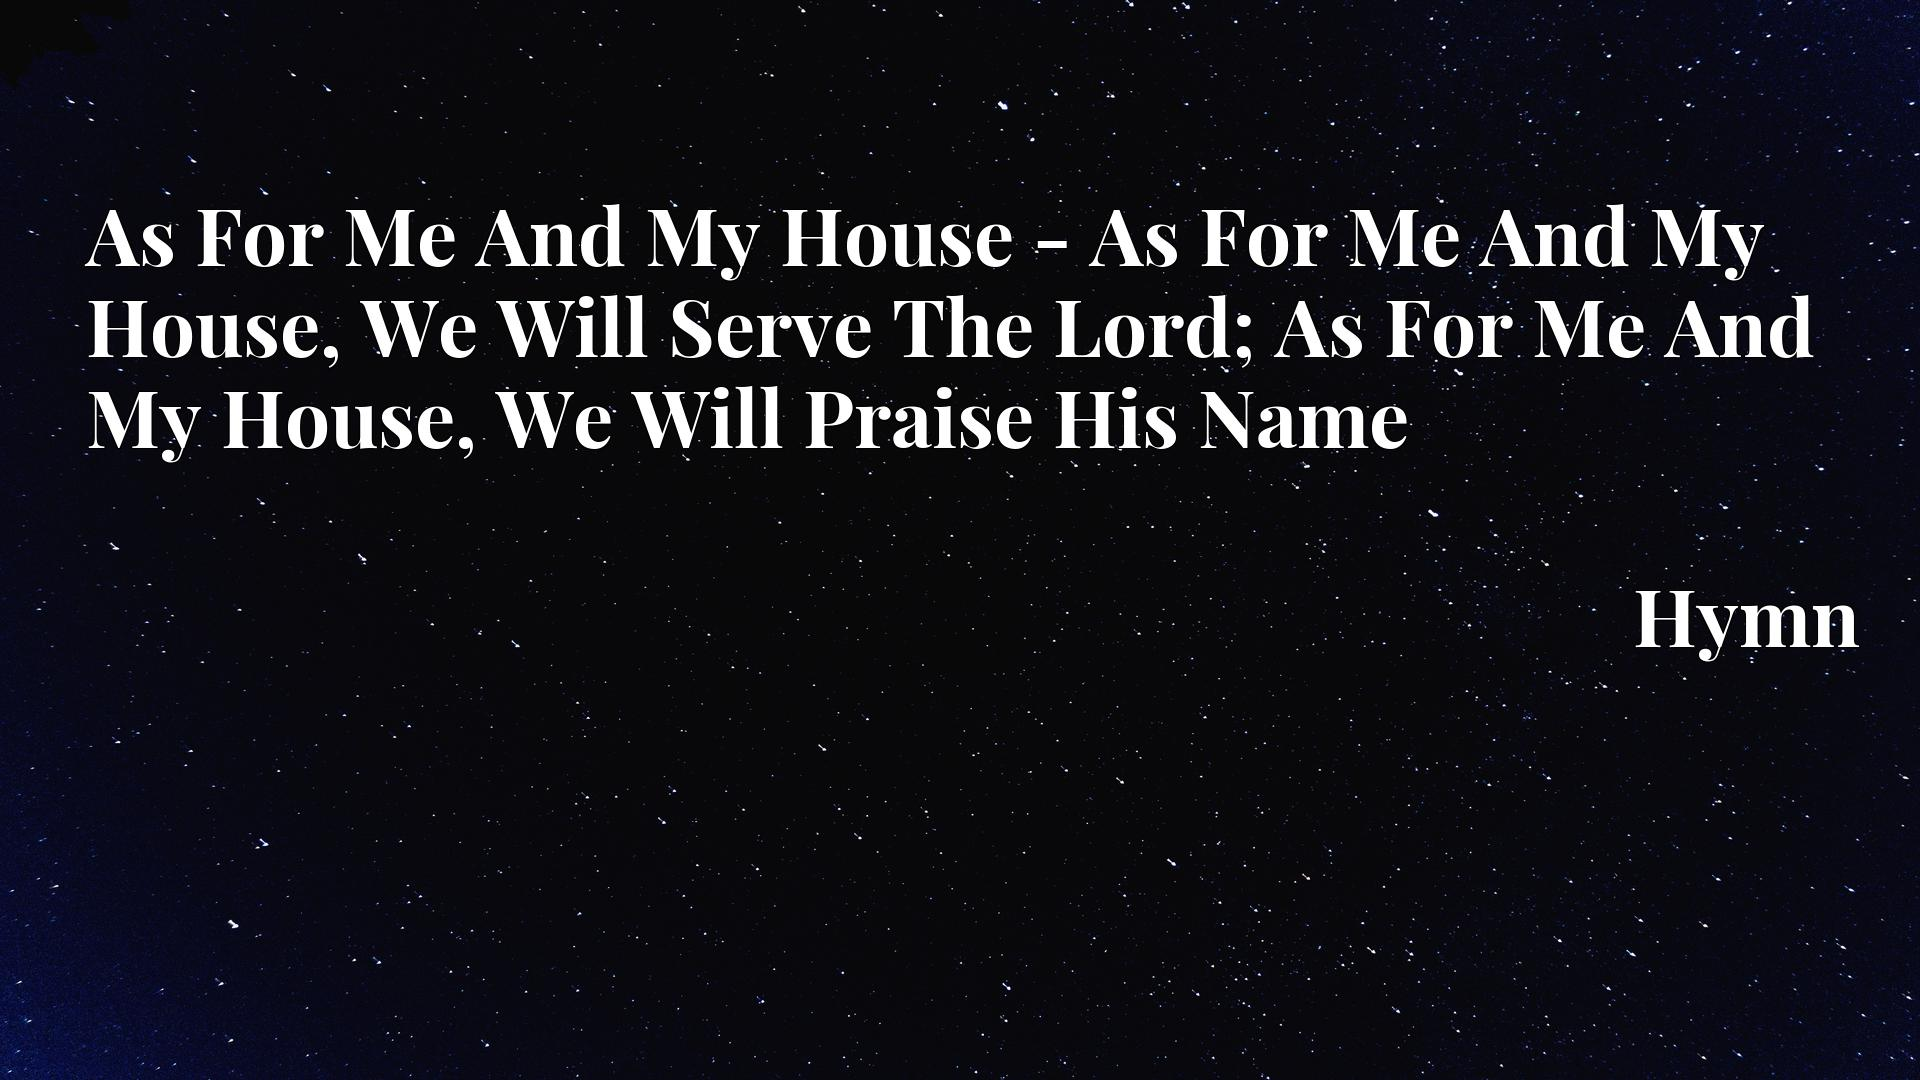 As For Me And My House - As For Me And My House, We Will Serve The Lord; As For Me And My House, We Will Praise His Name - Hymn